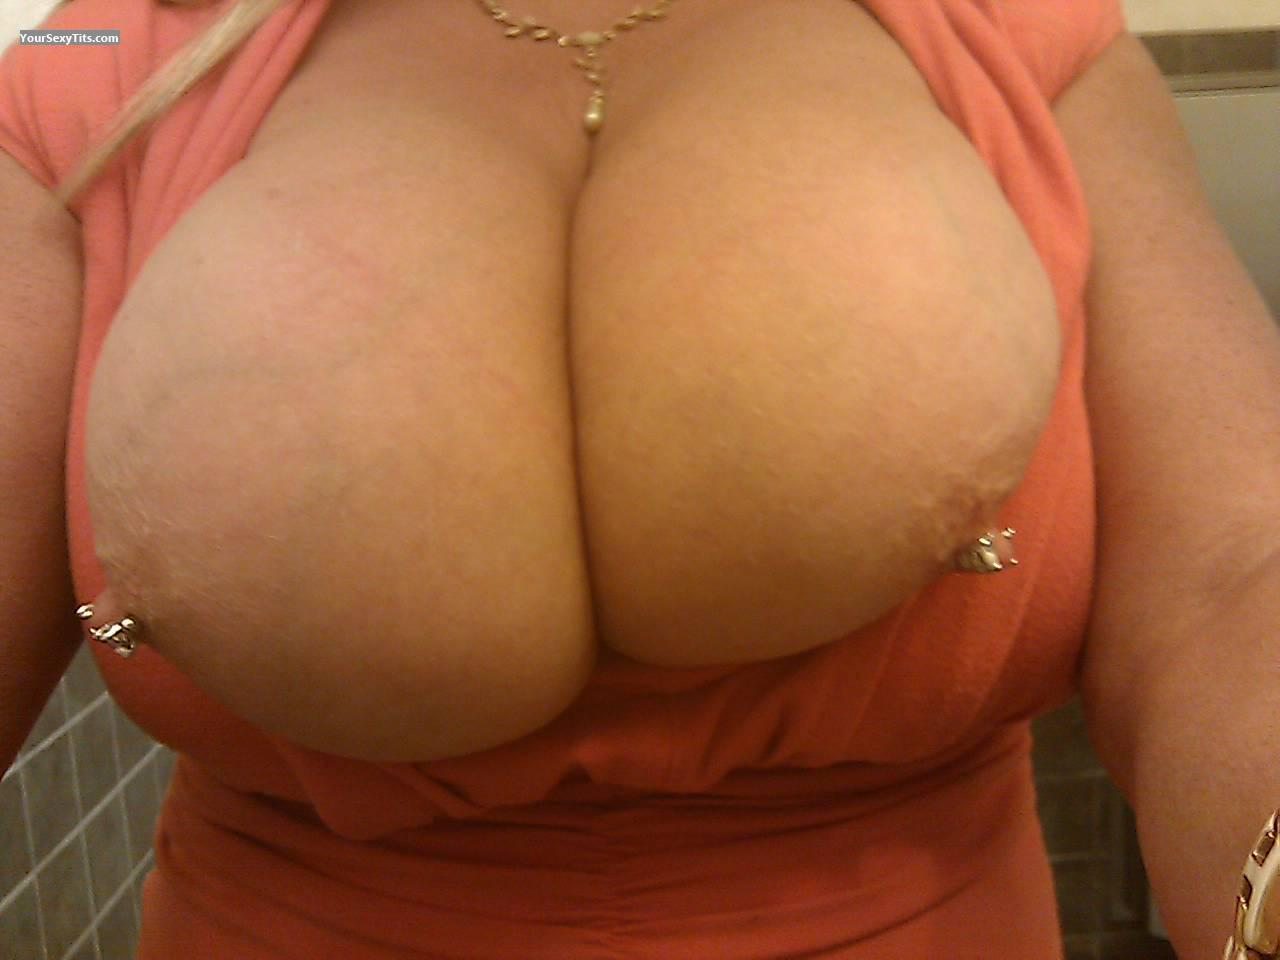 tits with nipple piercings page 2/118 - instant tit flash